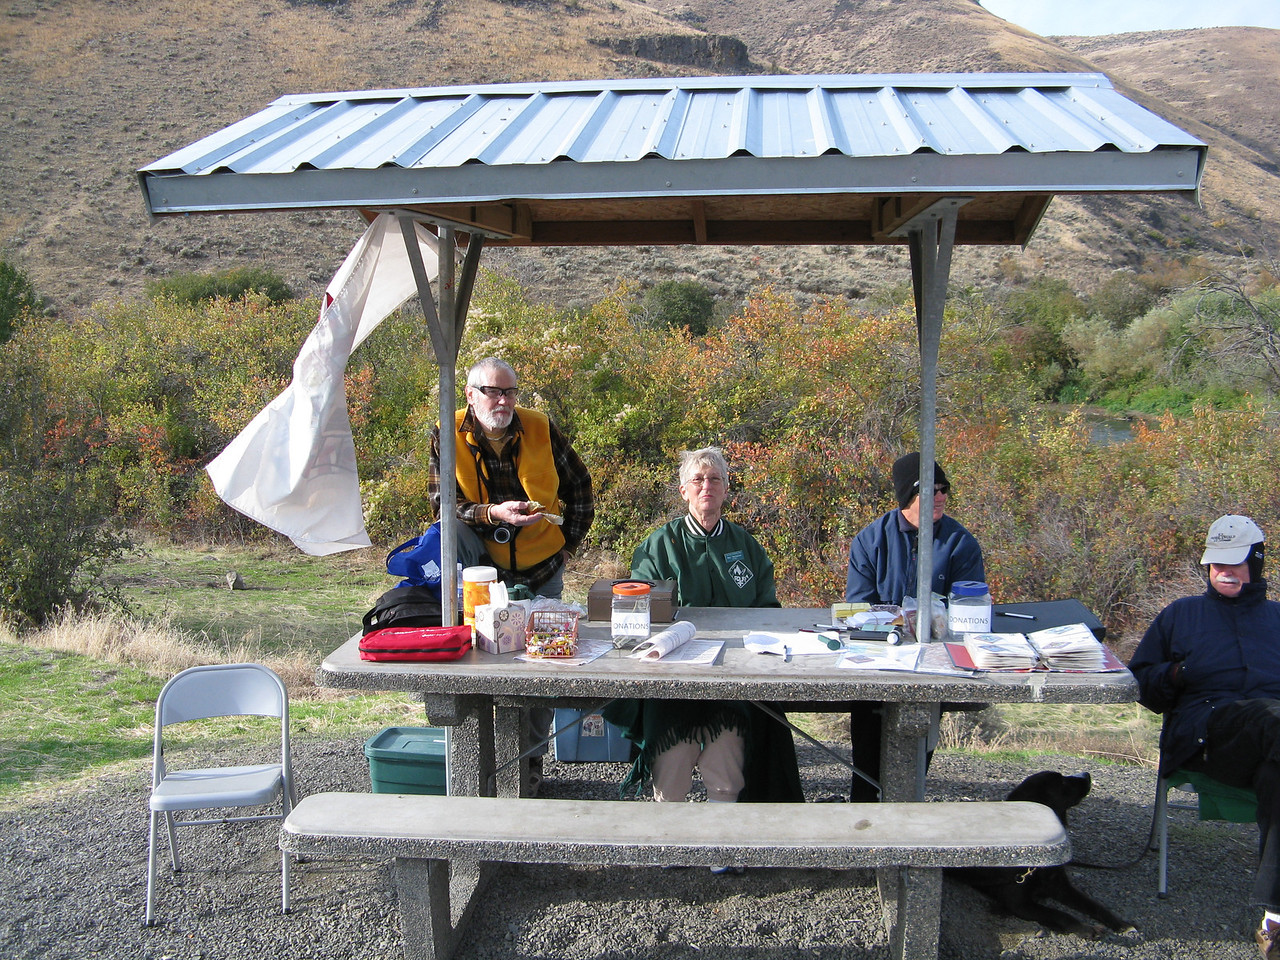 This is the registration table at the beginning of this Volkssport event.  It was cold -- about 46 degrees -- at 10 a.m. on this sunny October Sunday morning.   This trek was a weekend event sponsored by the Fourplus Foolhardy Folks Volksport Club of Renton, Washington.